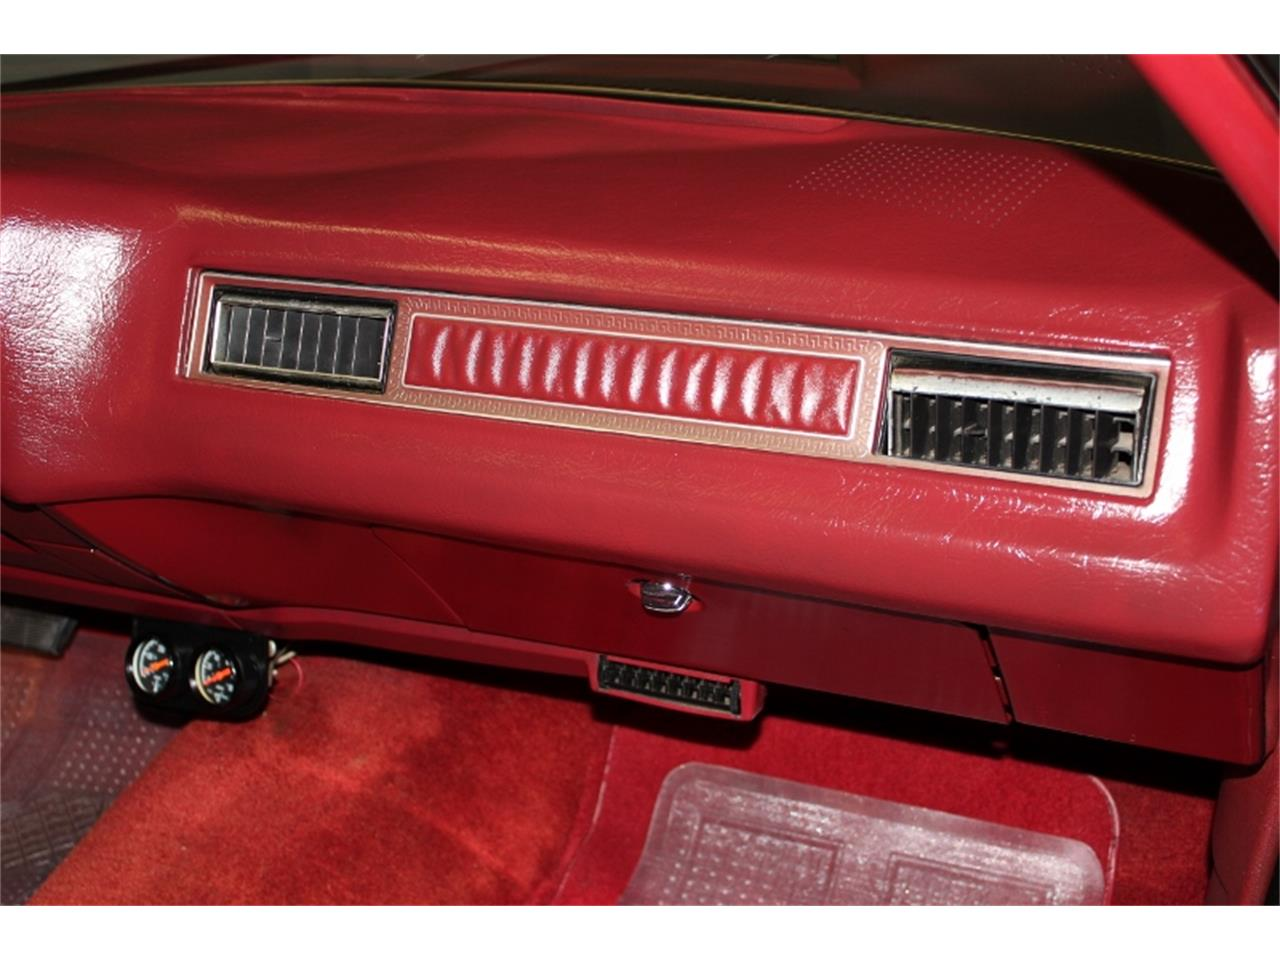 Large Picture of 1974 Caprice located in Lillington North Carolina - $28,500.00 - JUO8